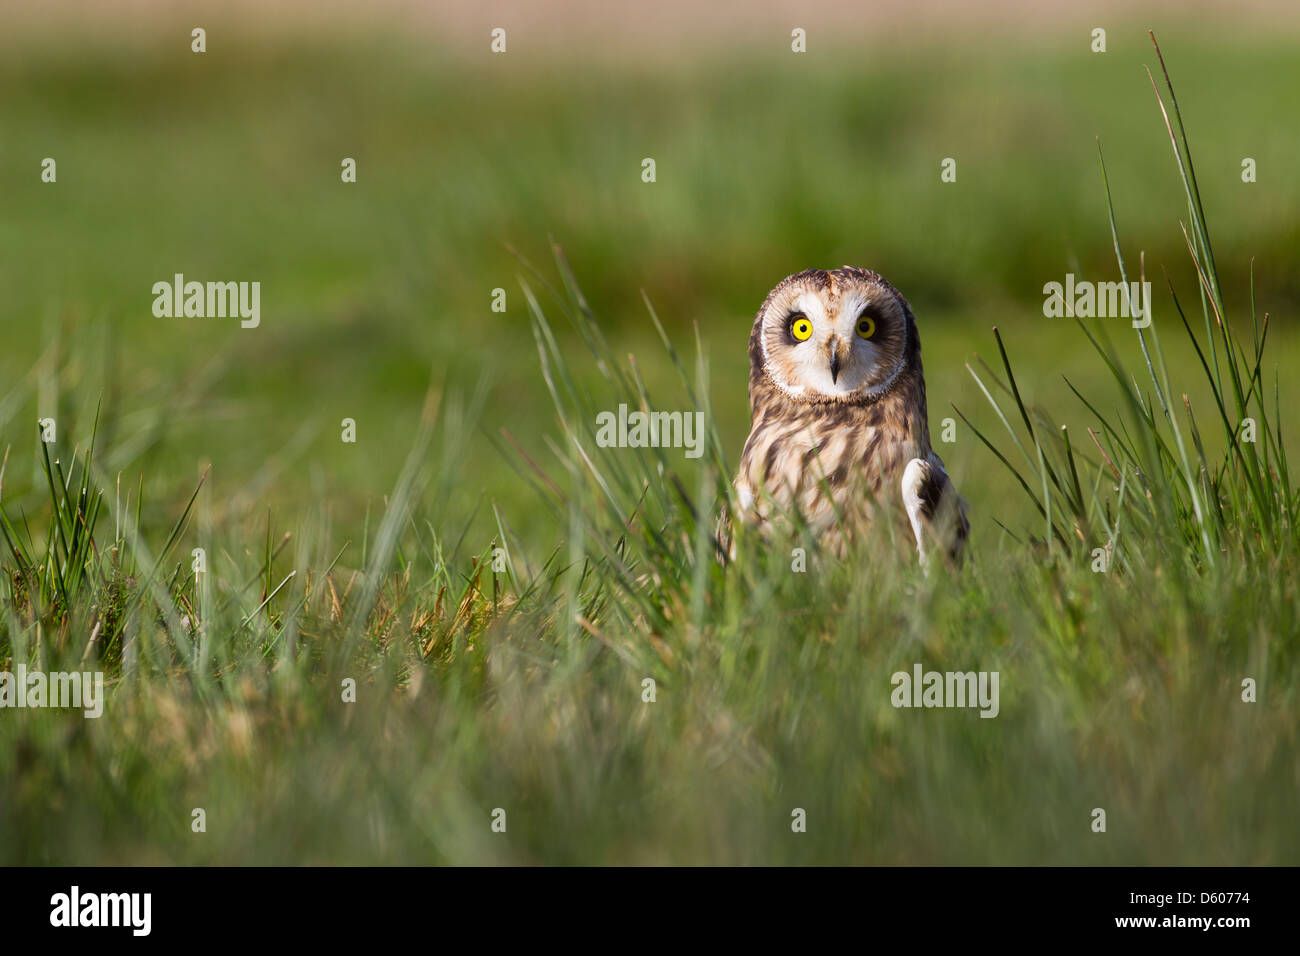 Short-eared Owl Asio flammeus (captive) perched in grass at Castle Caereinion, Wales in April. - Stock Image